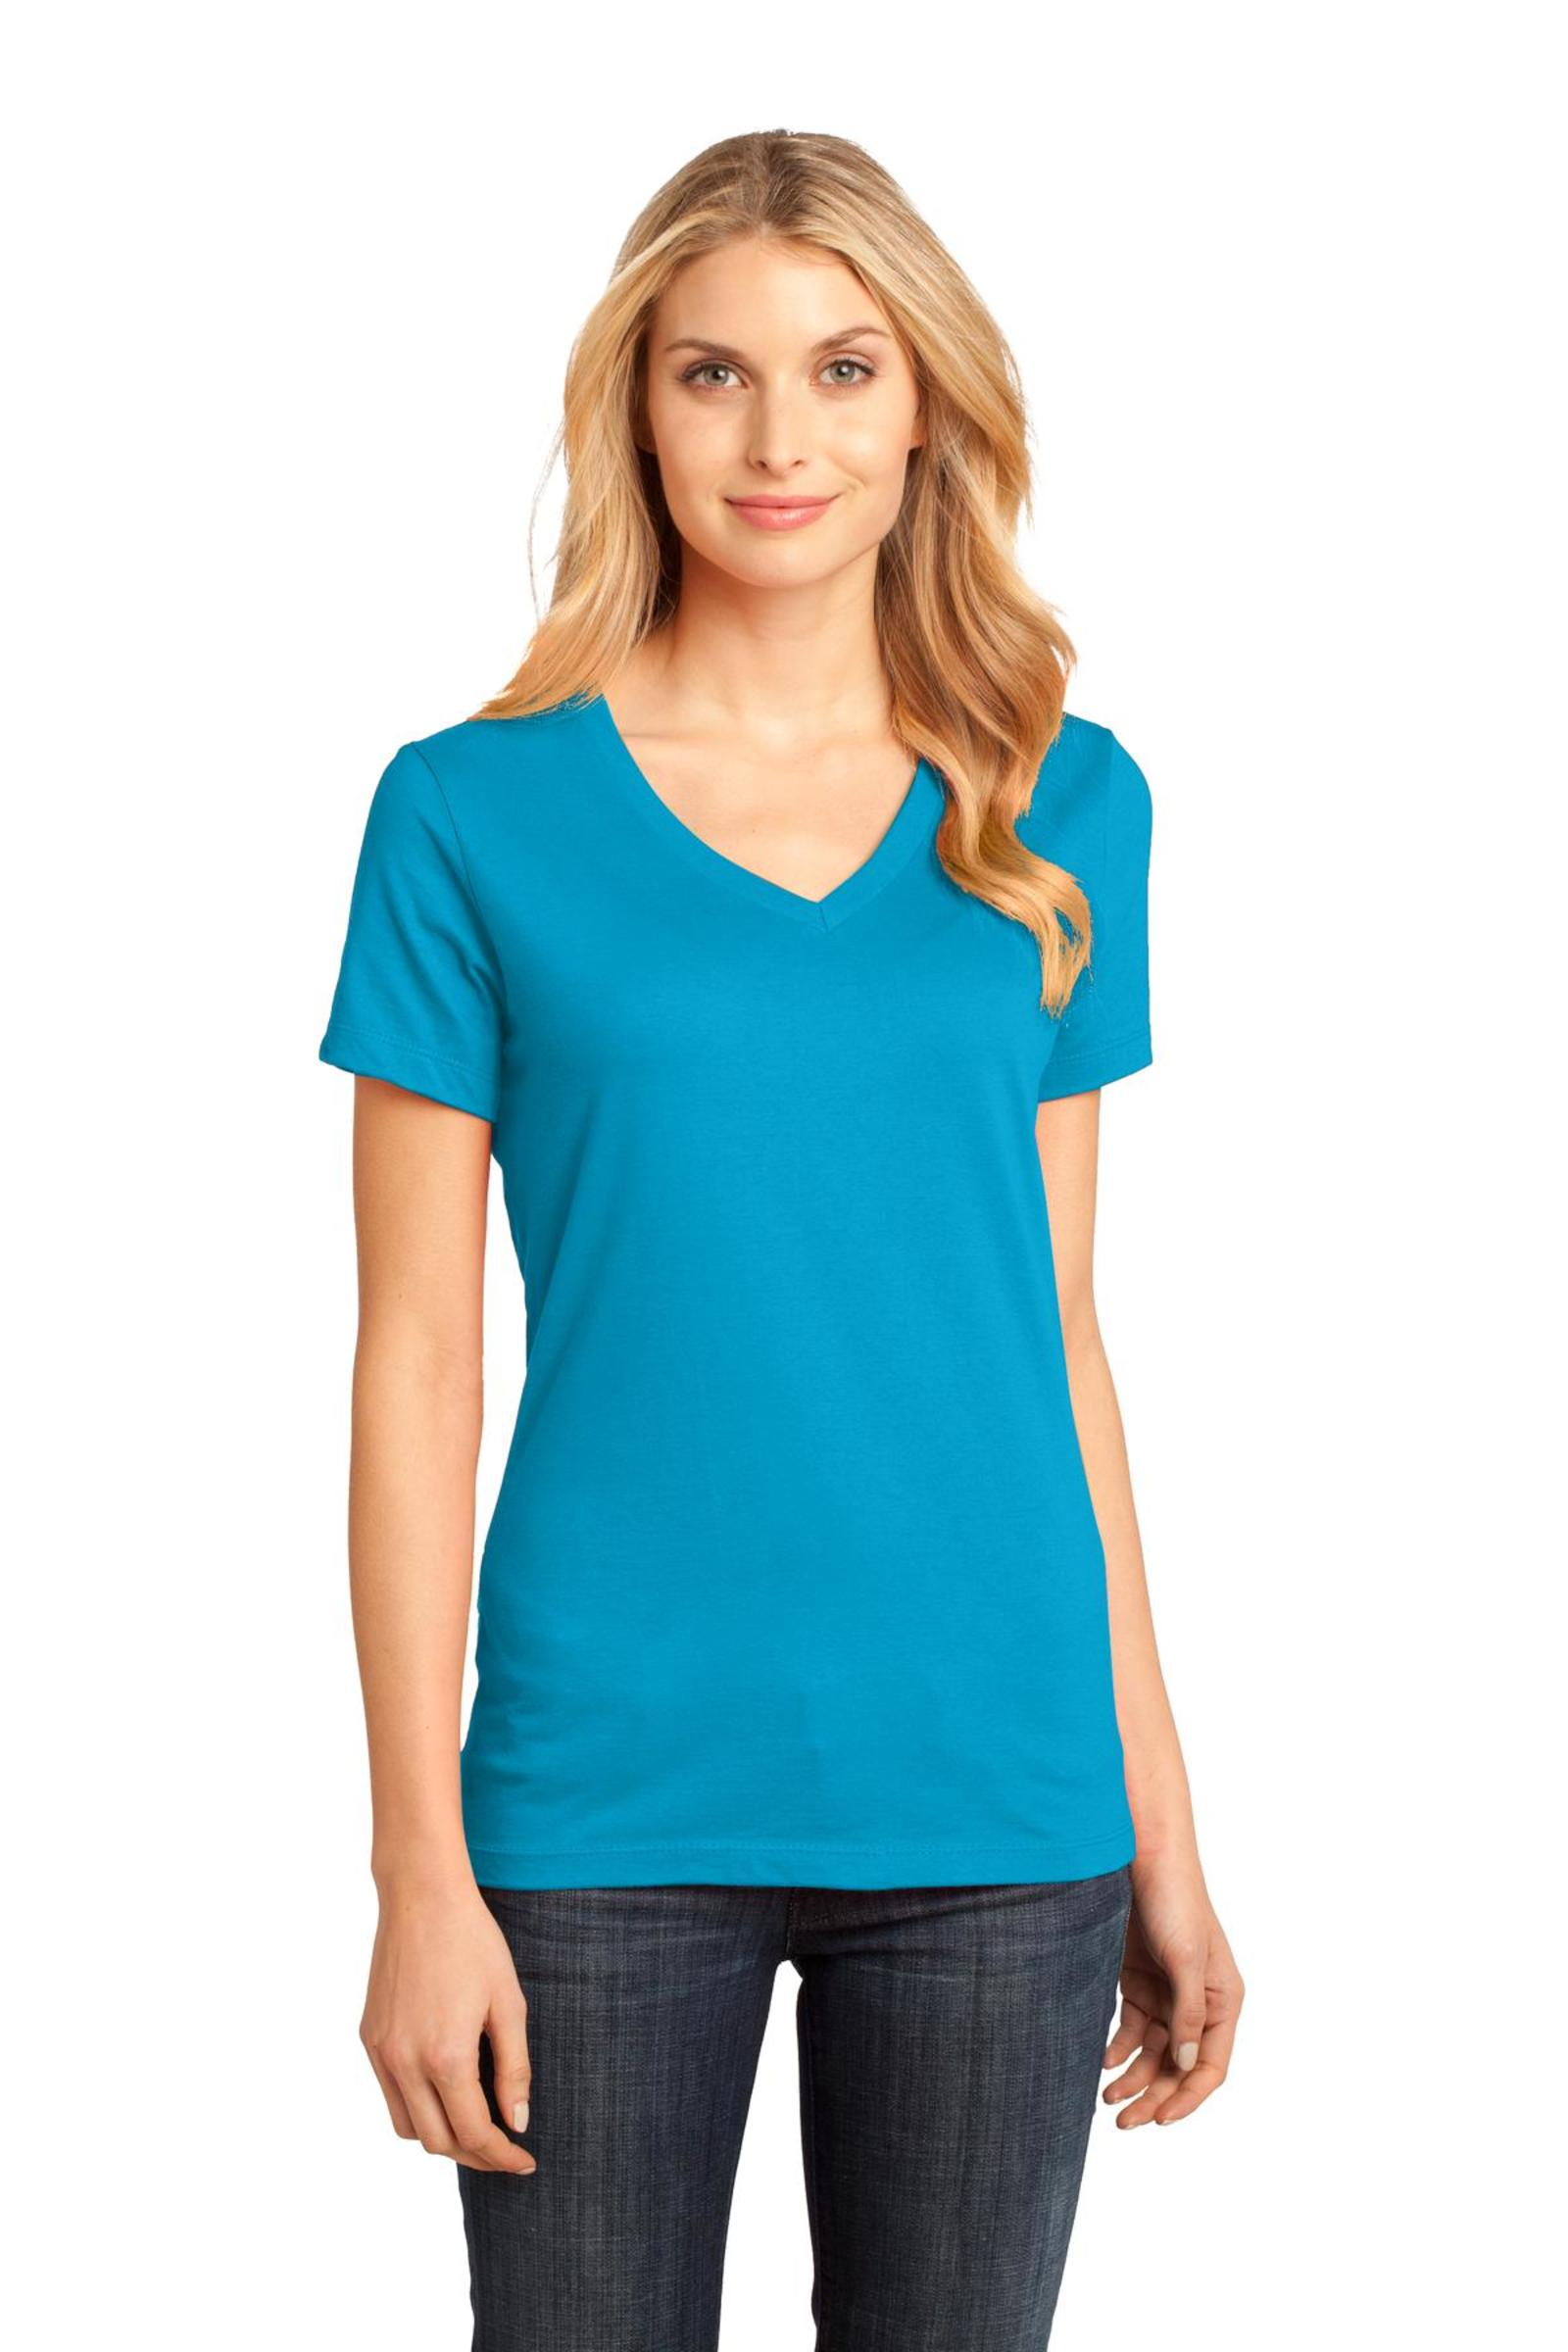 District Embroidered Women's Perfect Weight V-Neck Tee